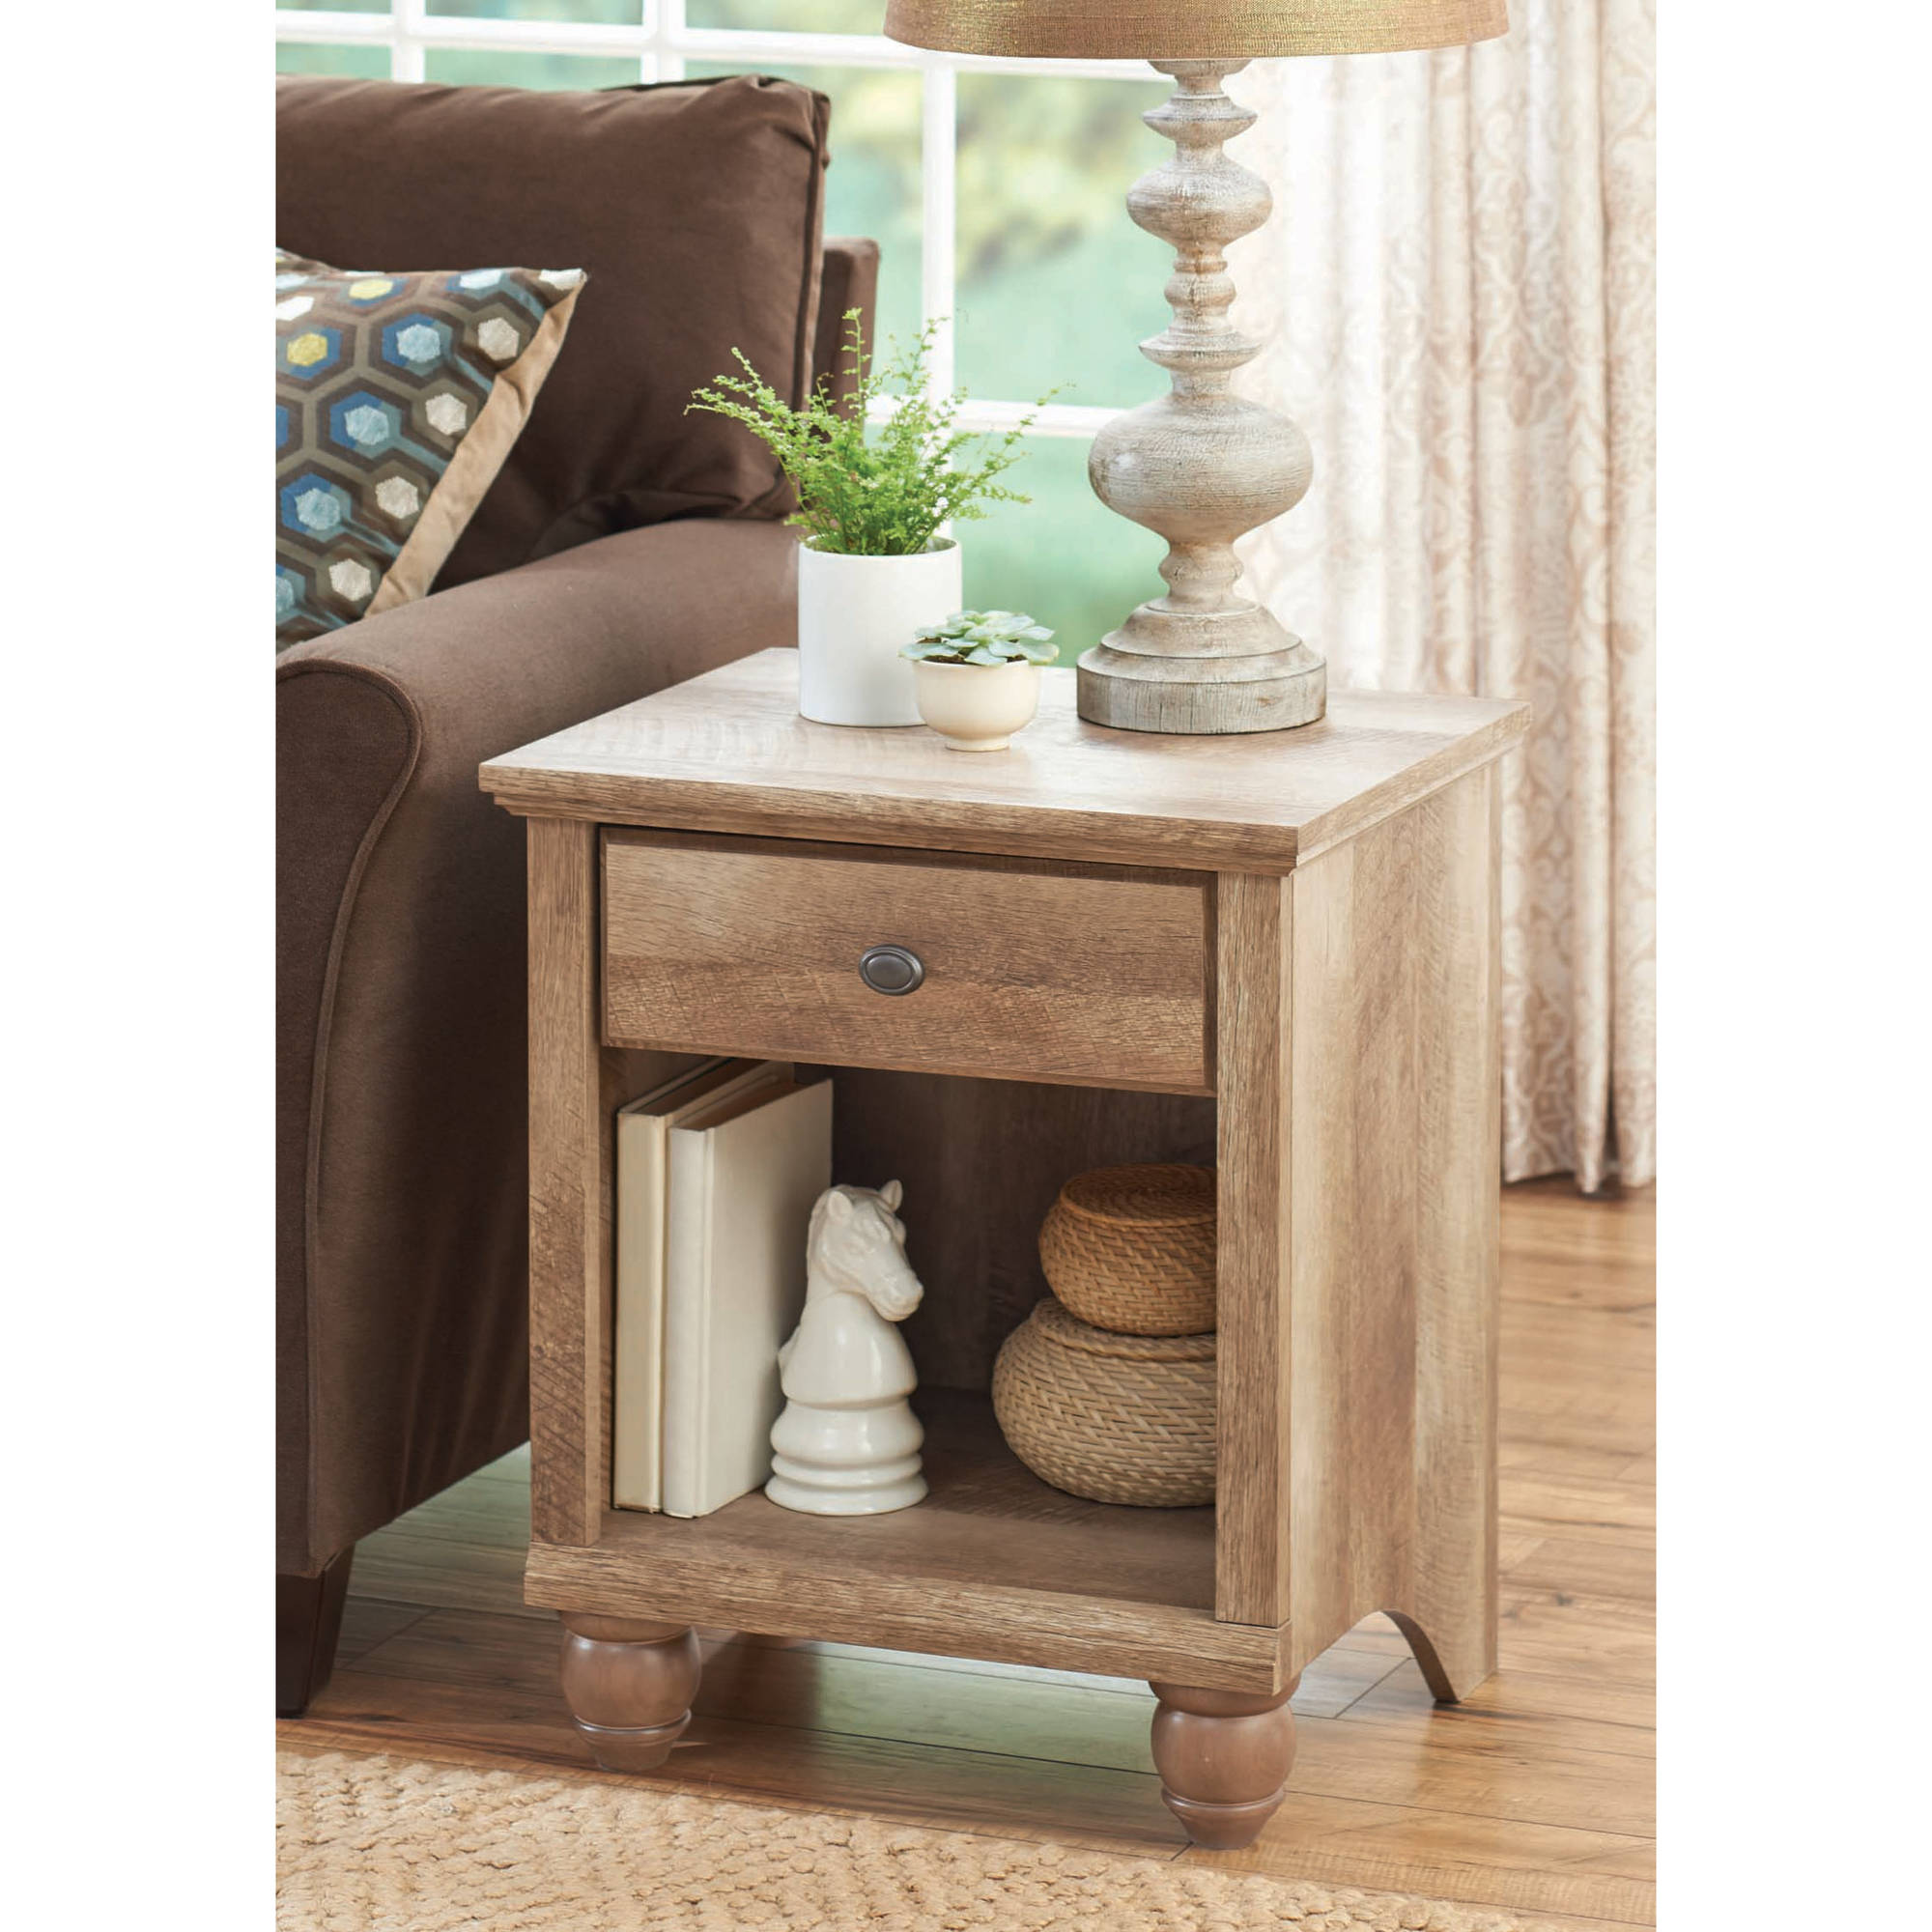 better homes gardens crossmill accent table weathered finish end tables with drawers teak occasional silver mirrored nightstand ceramic black metal glass entryway furniture mirror